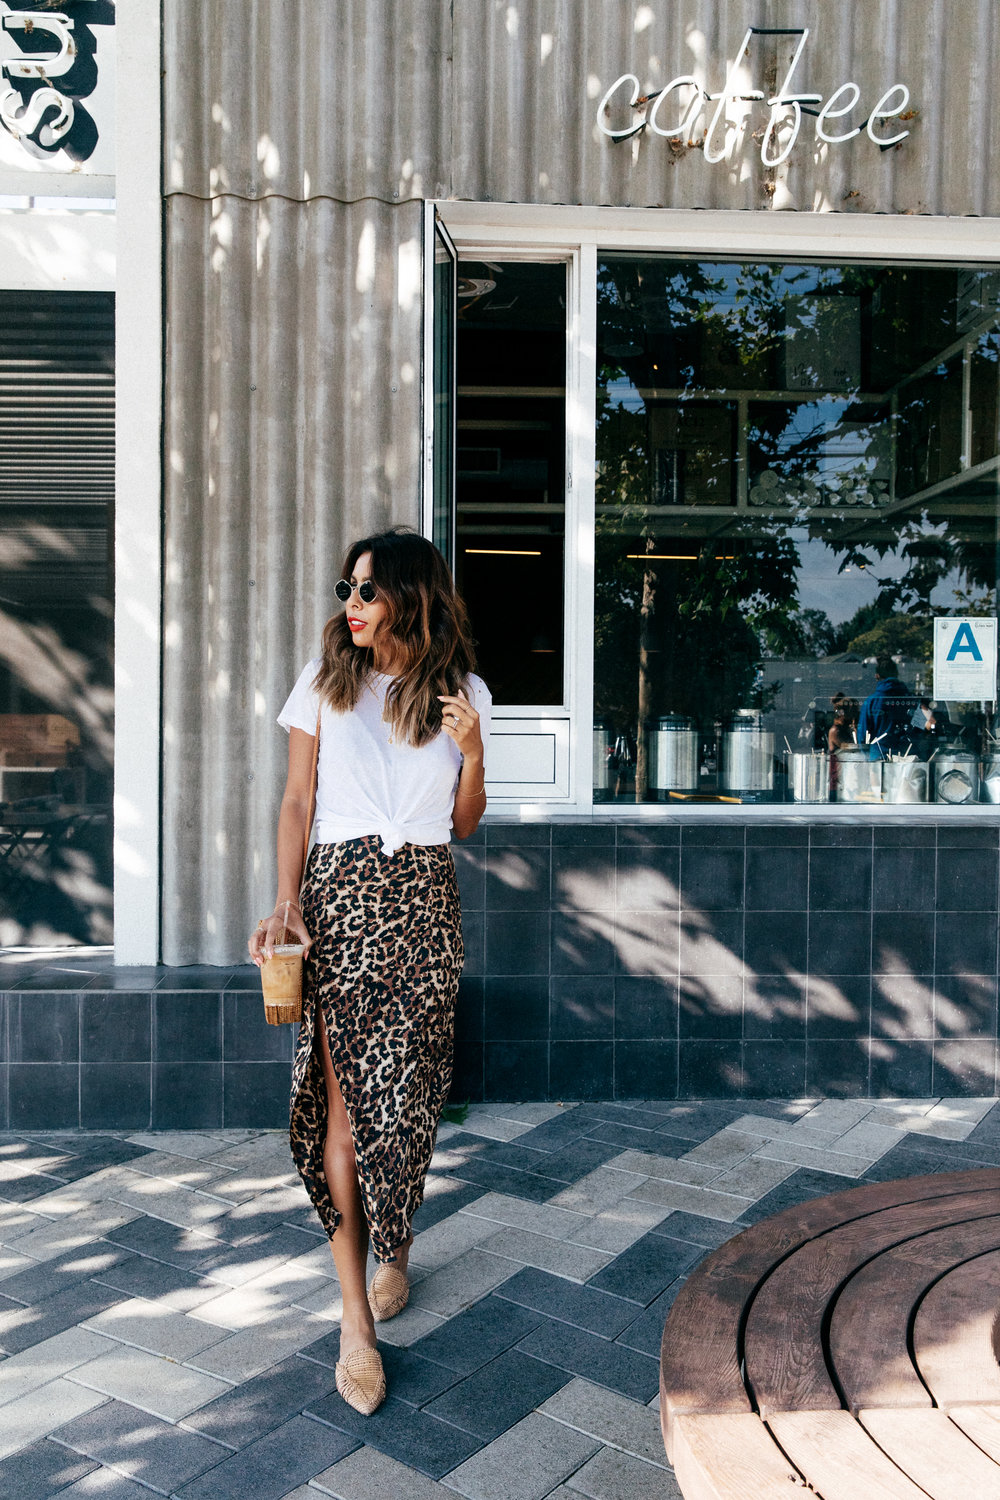 Endless Summer Leopard Dress with white tee over it